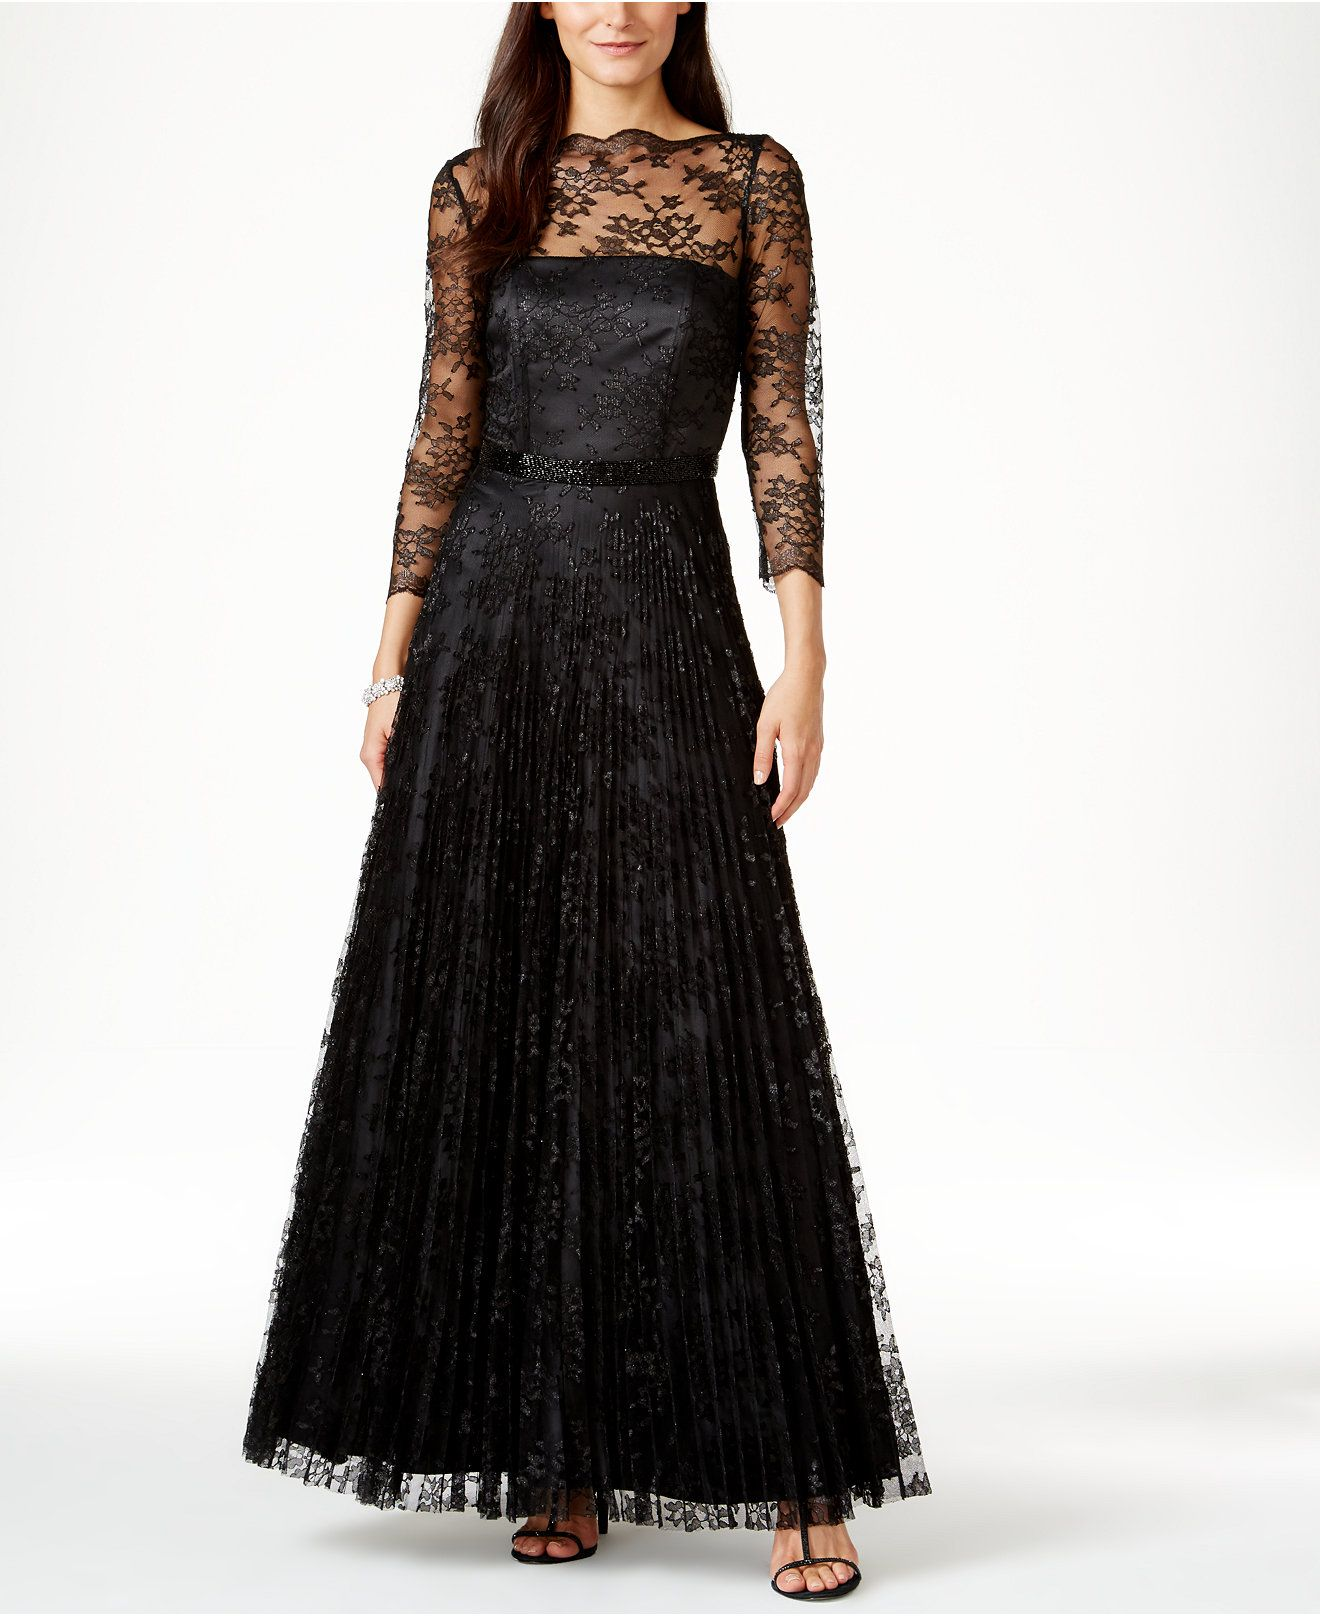 Tahari Asl Illusion Lace Beaded Gown Dresses Women Macy S Black Lace Evening Gown Evening Dresses With Sleeves Beaded Evening Gowns [ 1616 x 1320 Pixel ]